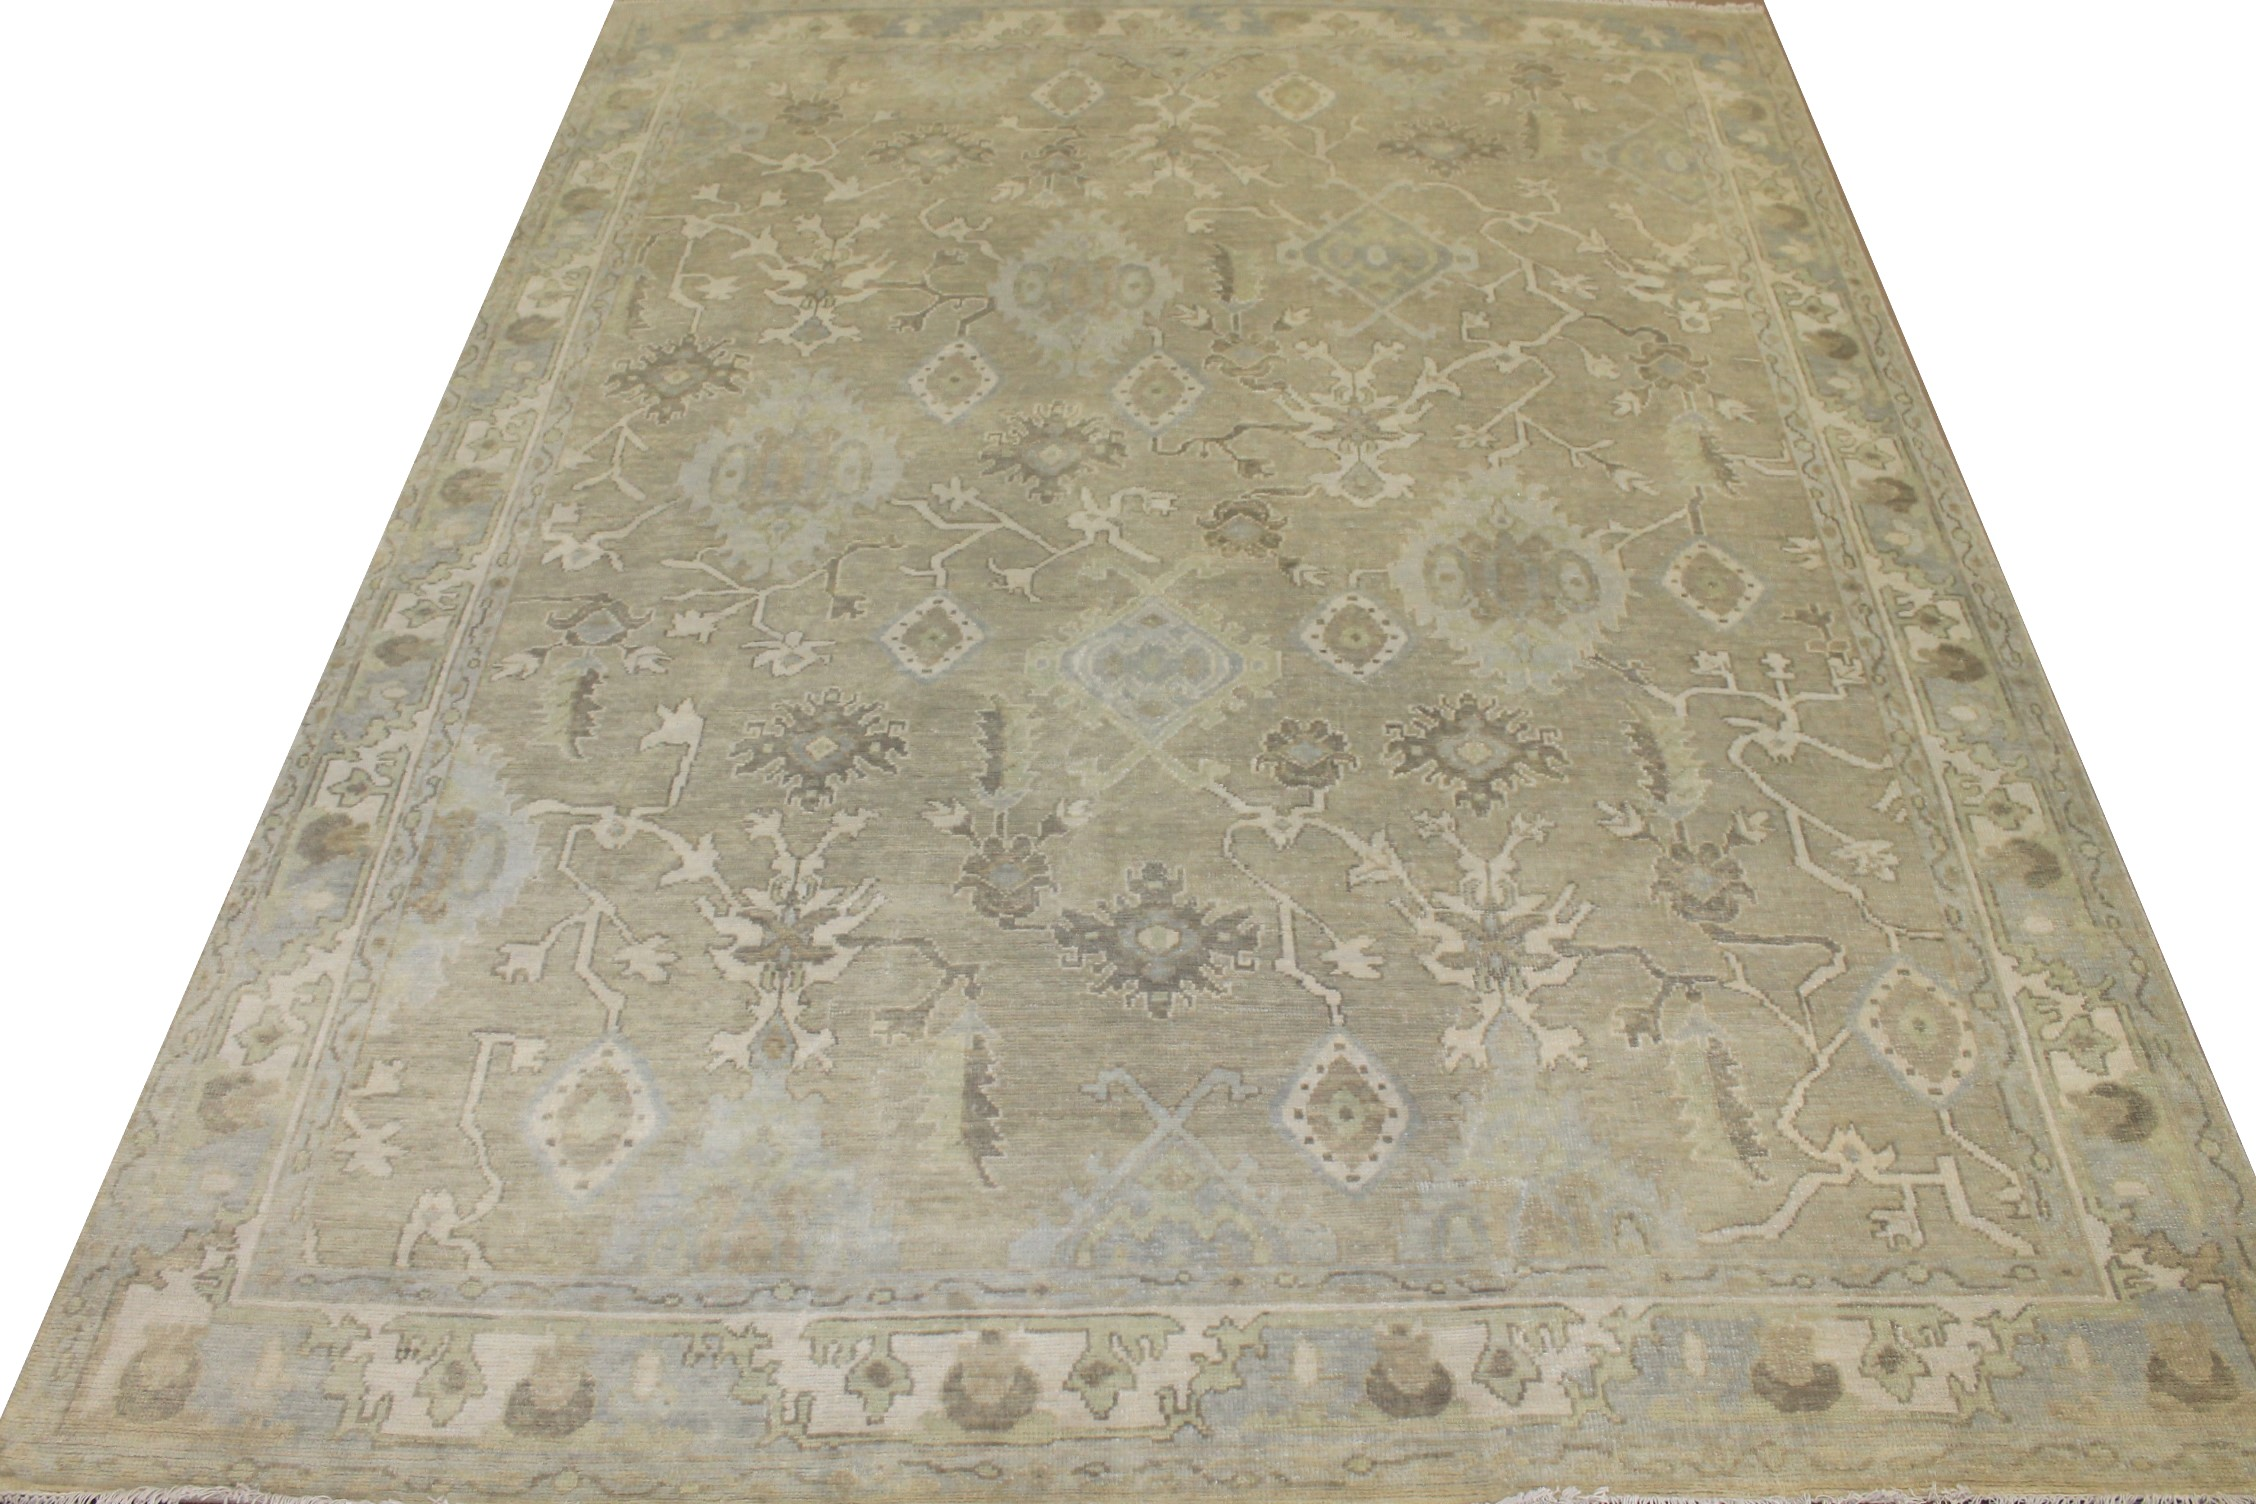 8x10 Oushak Hand Knotted Wool Area Rug - MR025556